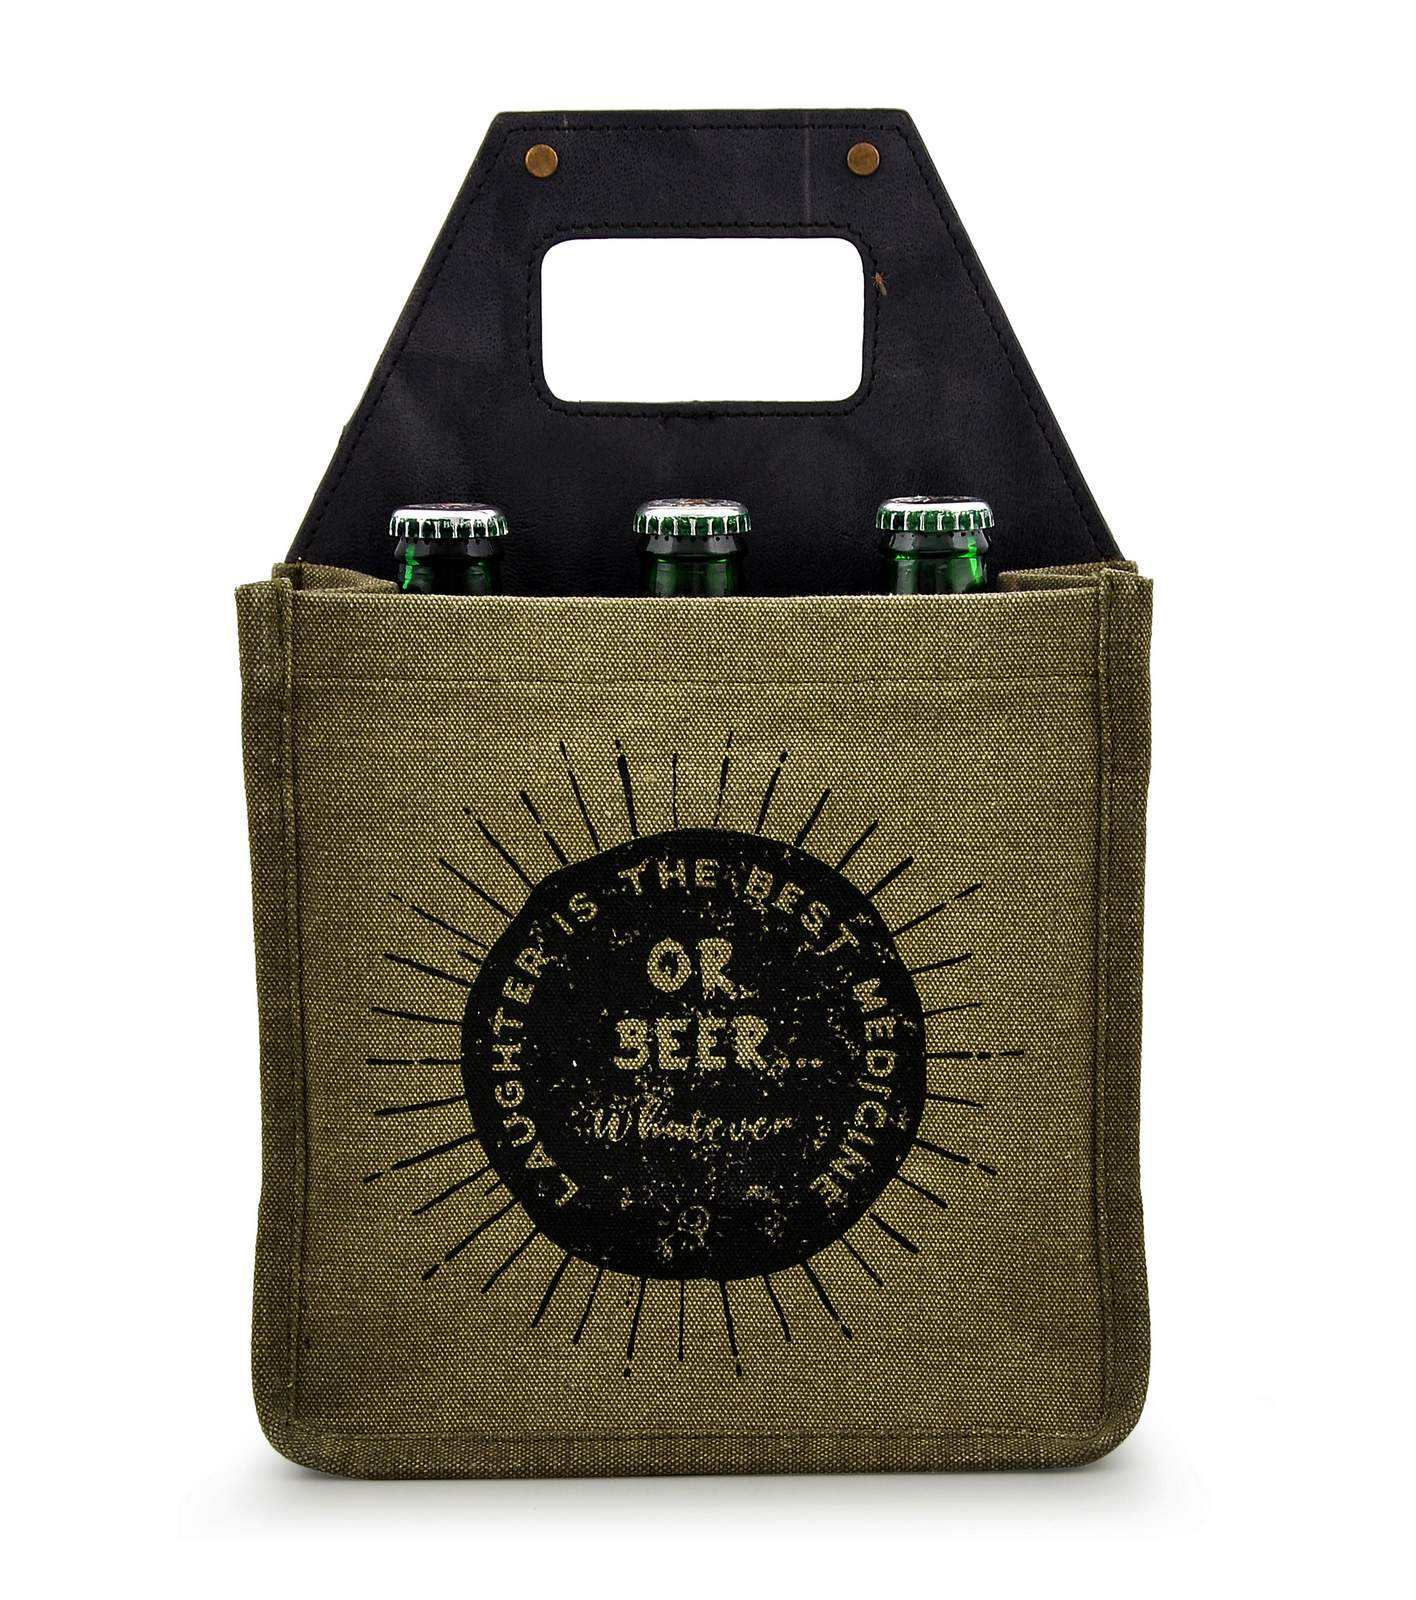 6 pack bottle holder